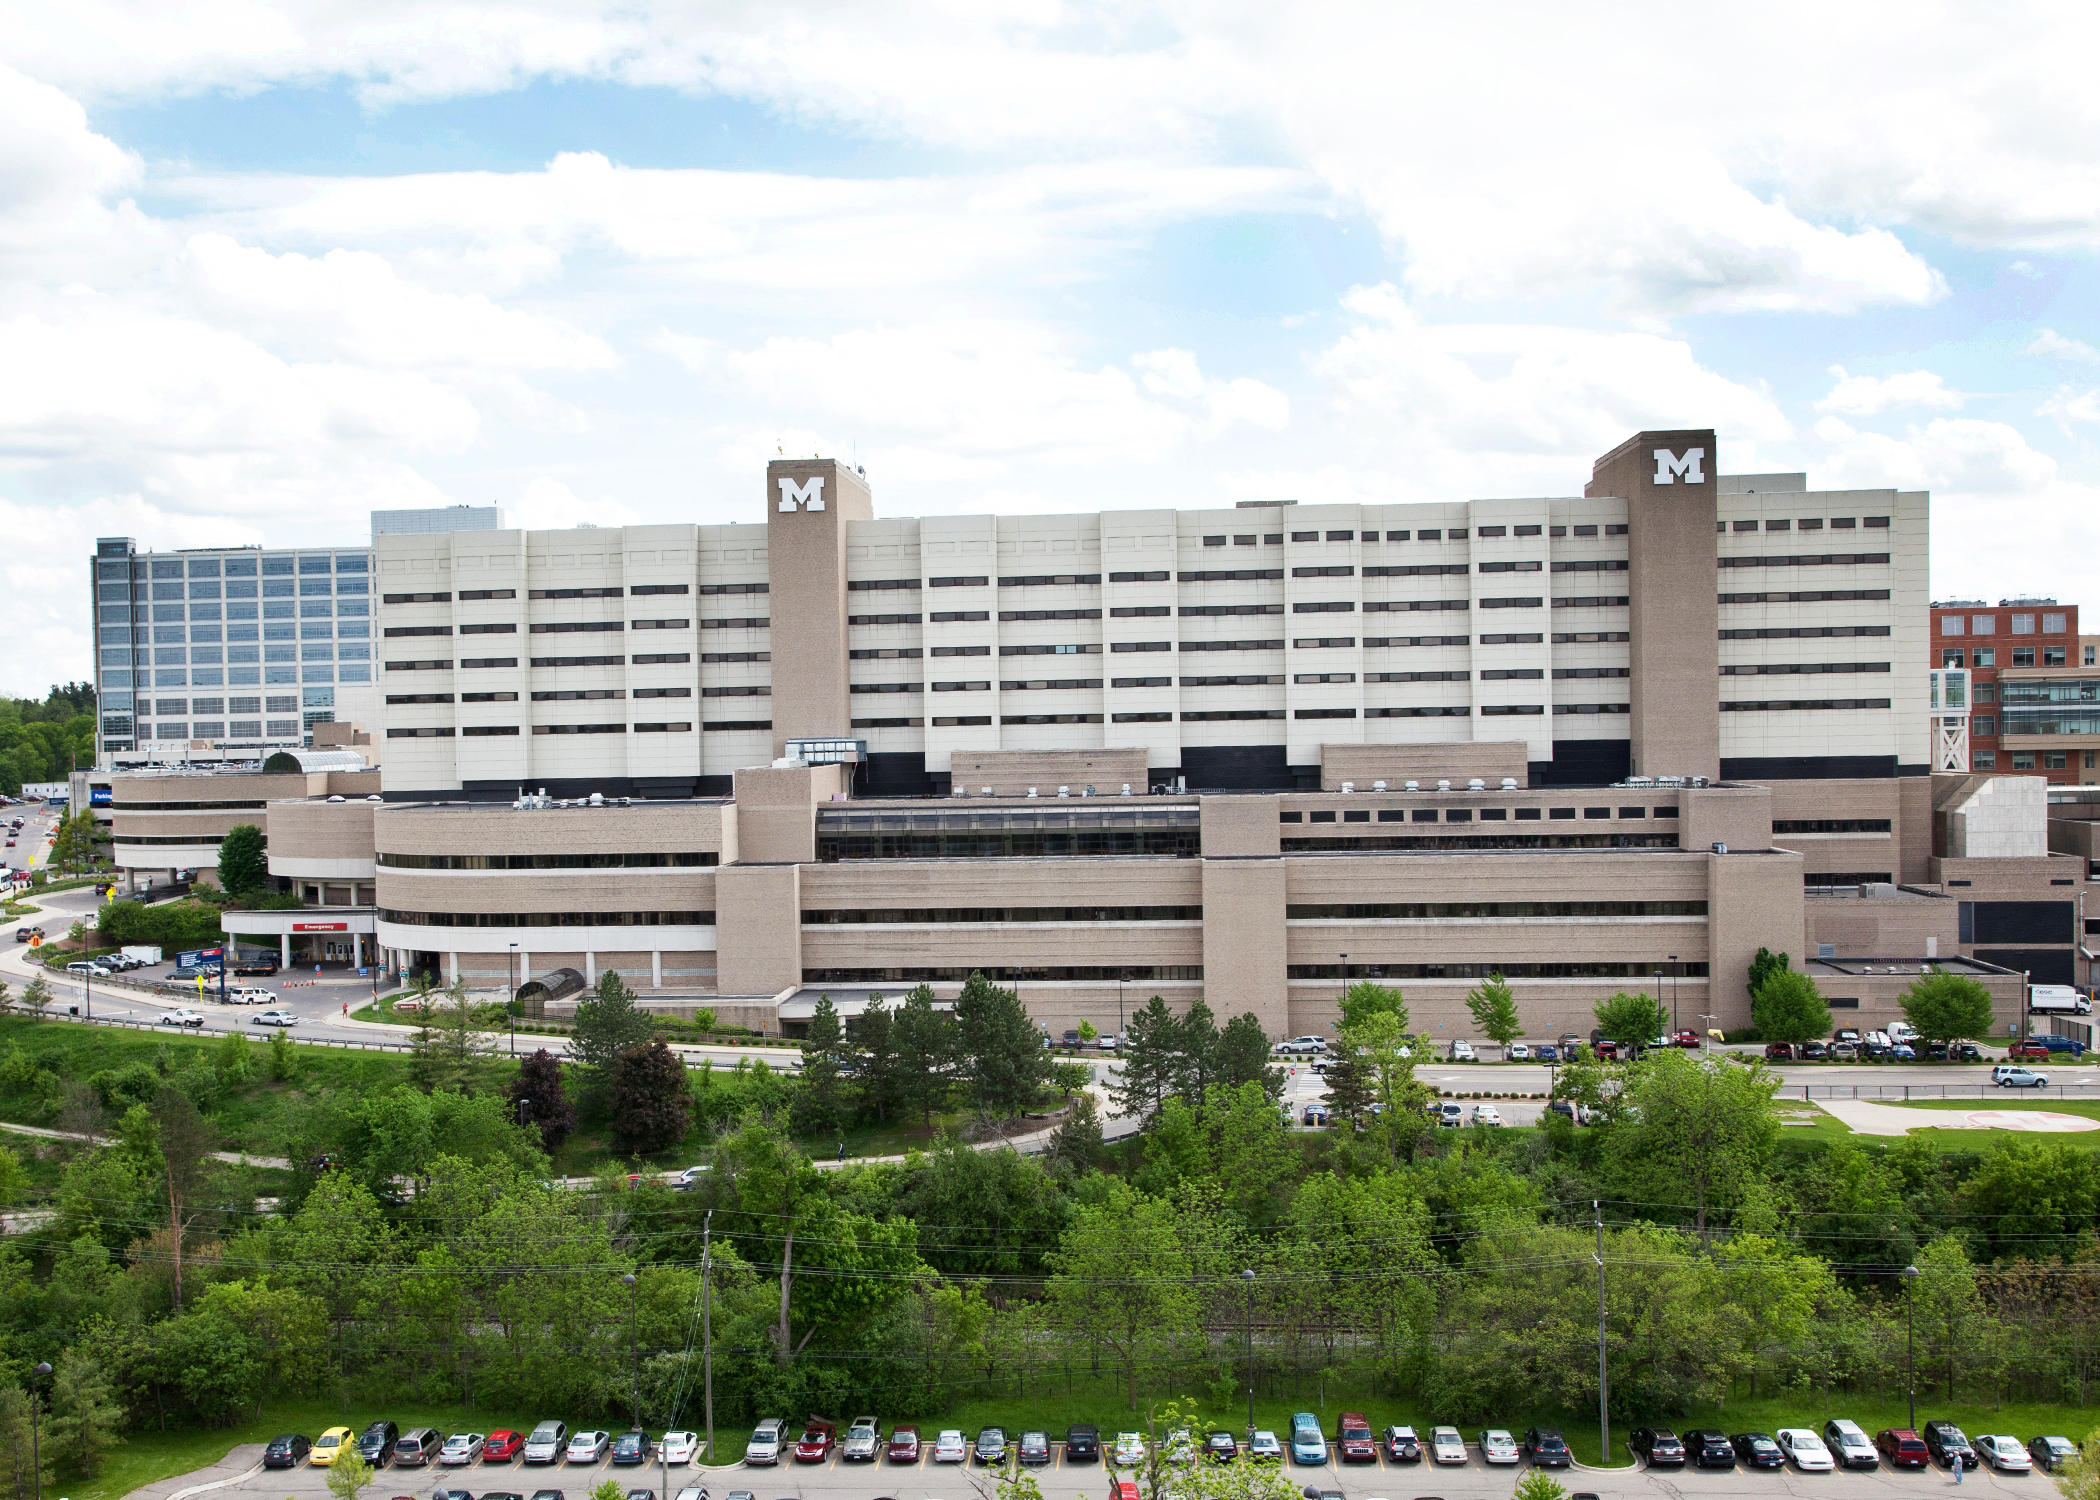 Image of University Hospital location, 1500 E. Medical Center Dr. Ann Arbor MI 48109, Phone 734-936-6641.